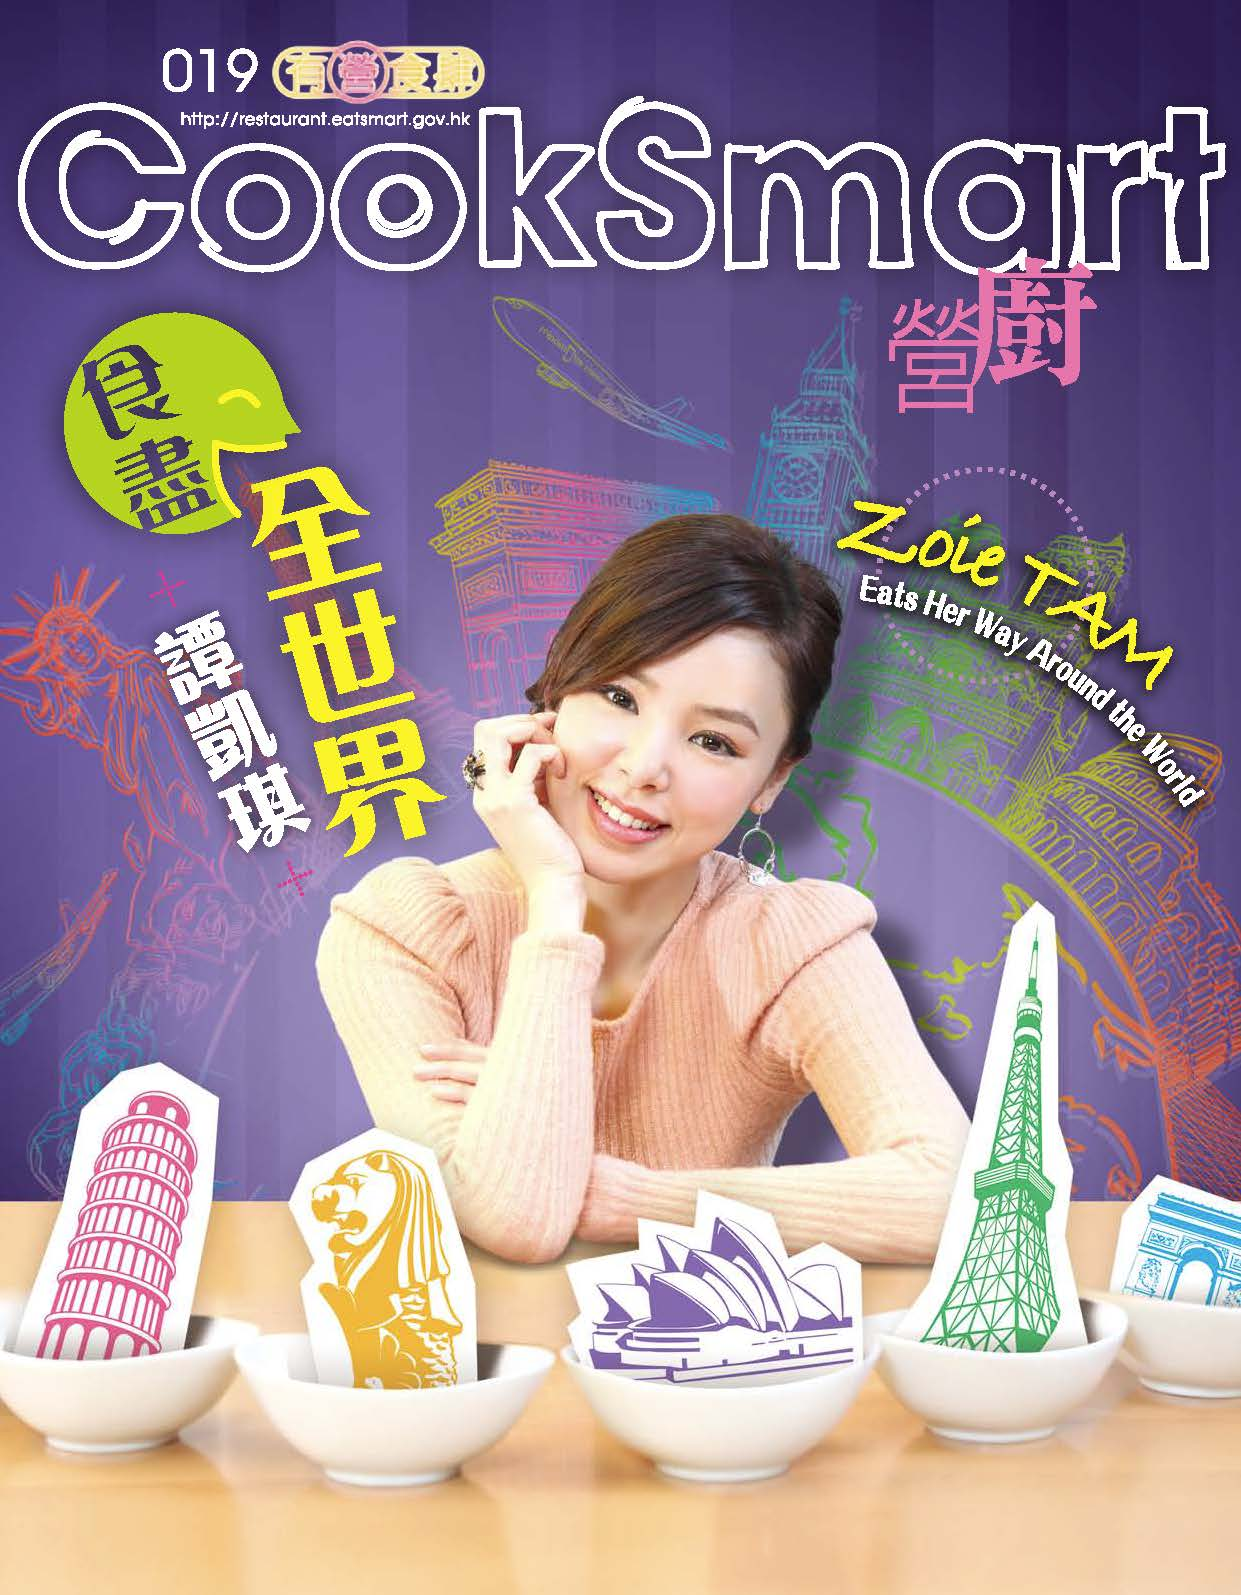 CookSmart (19th Issue) Page 1